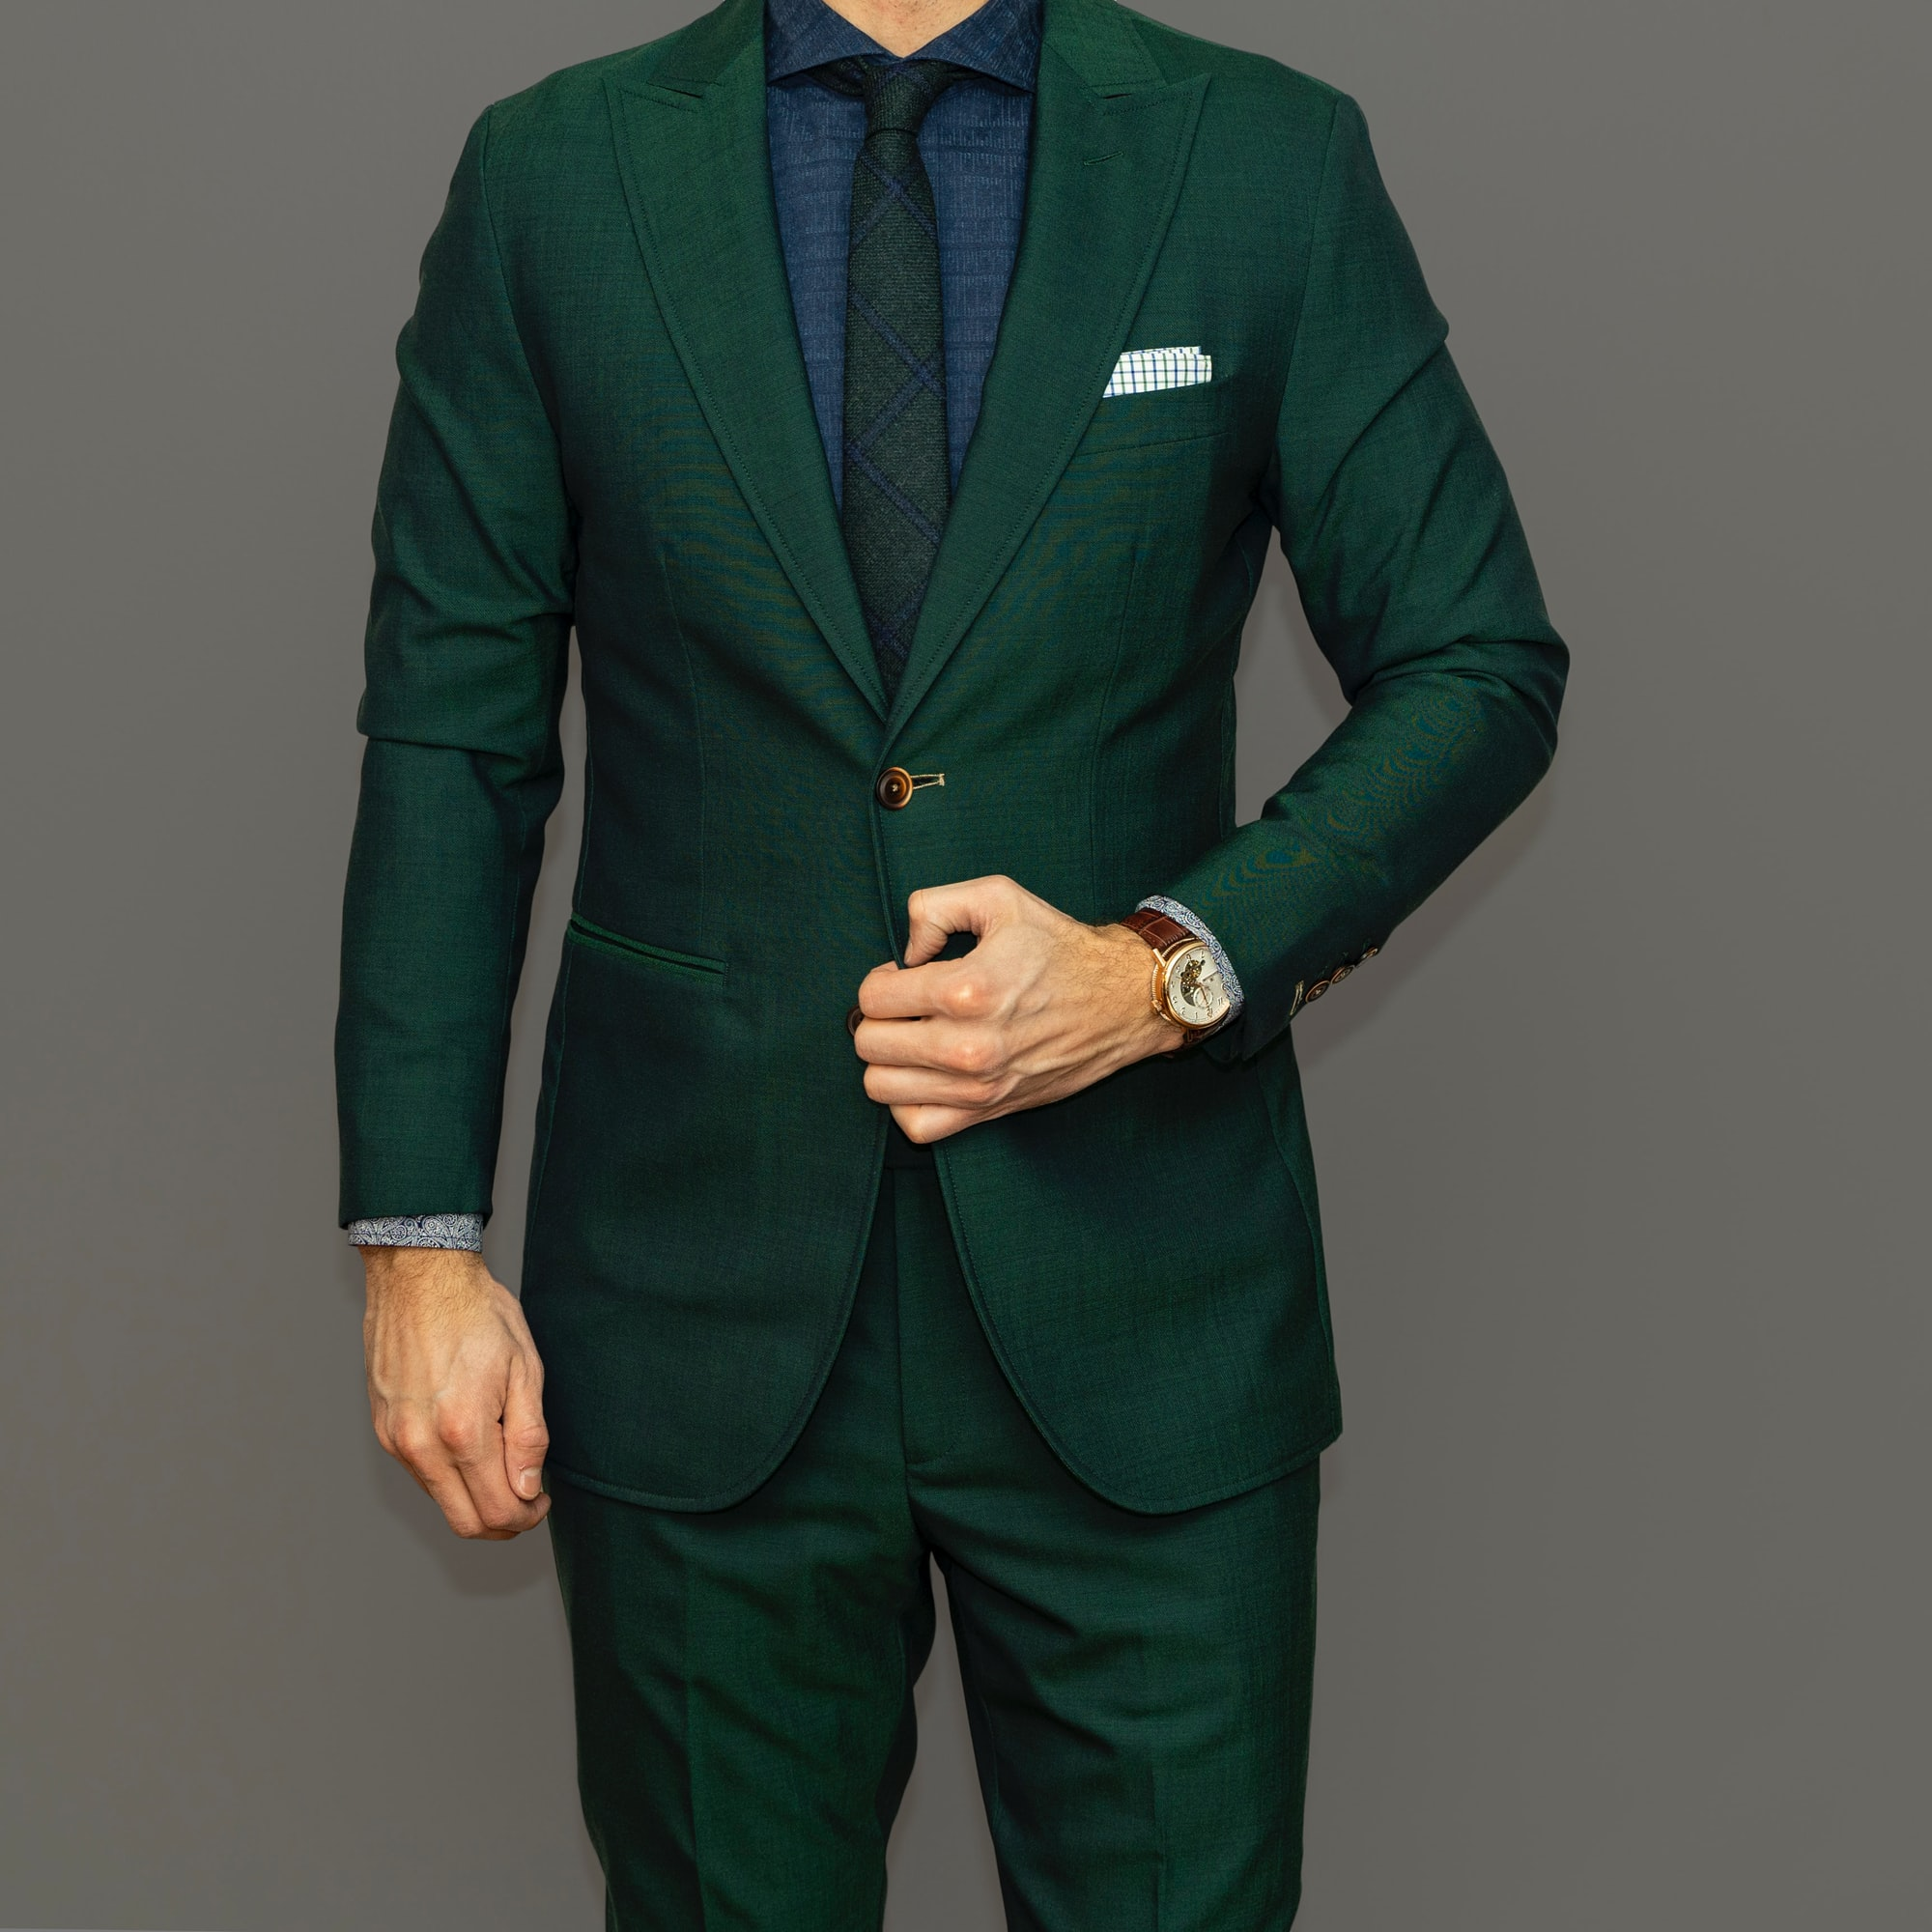 Dapper Professional showcasing one of his boldest, most modern combinations. The combination really highlights the color green, a custom green suit a custom blue shirt and a premium green tie. It might be over the top for some, but for others this is sartorial perfection.